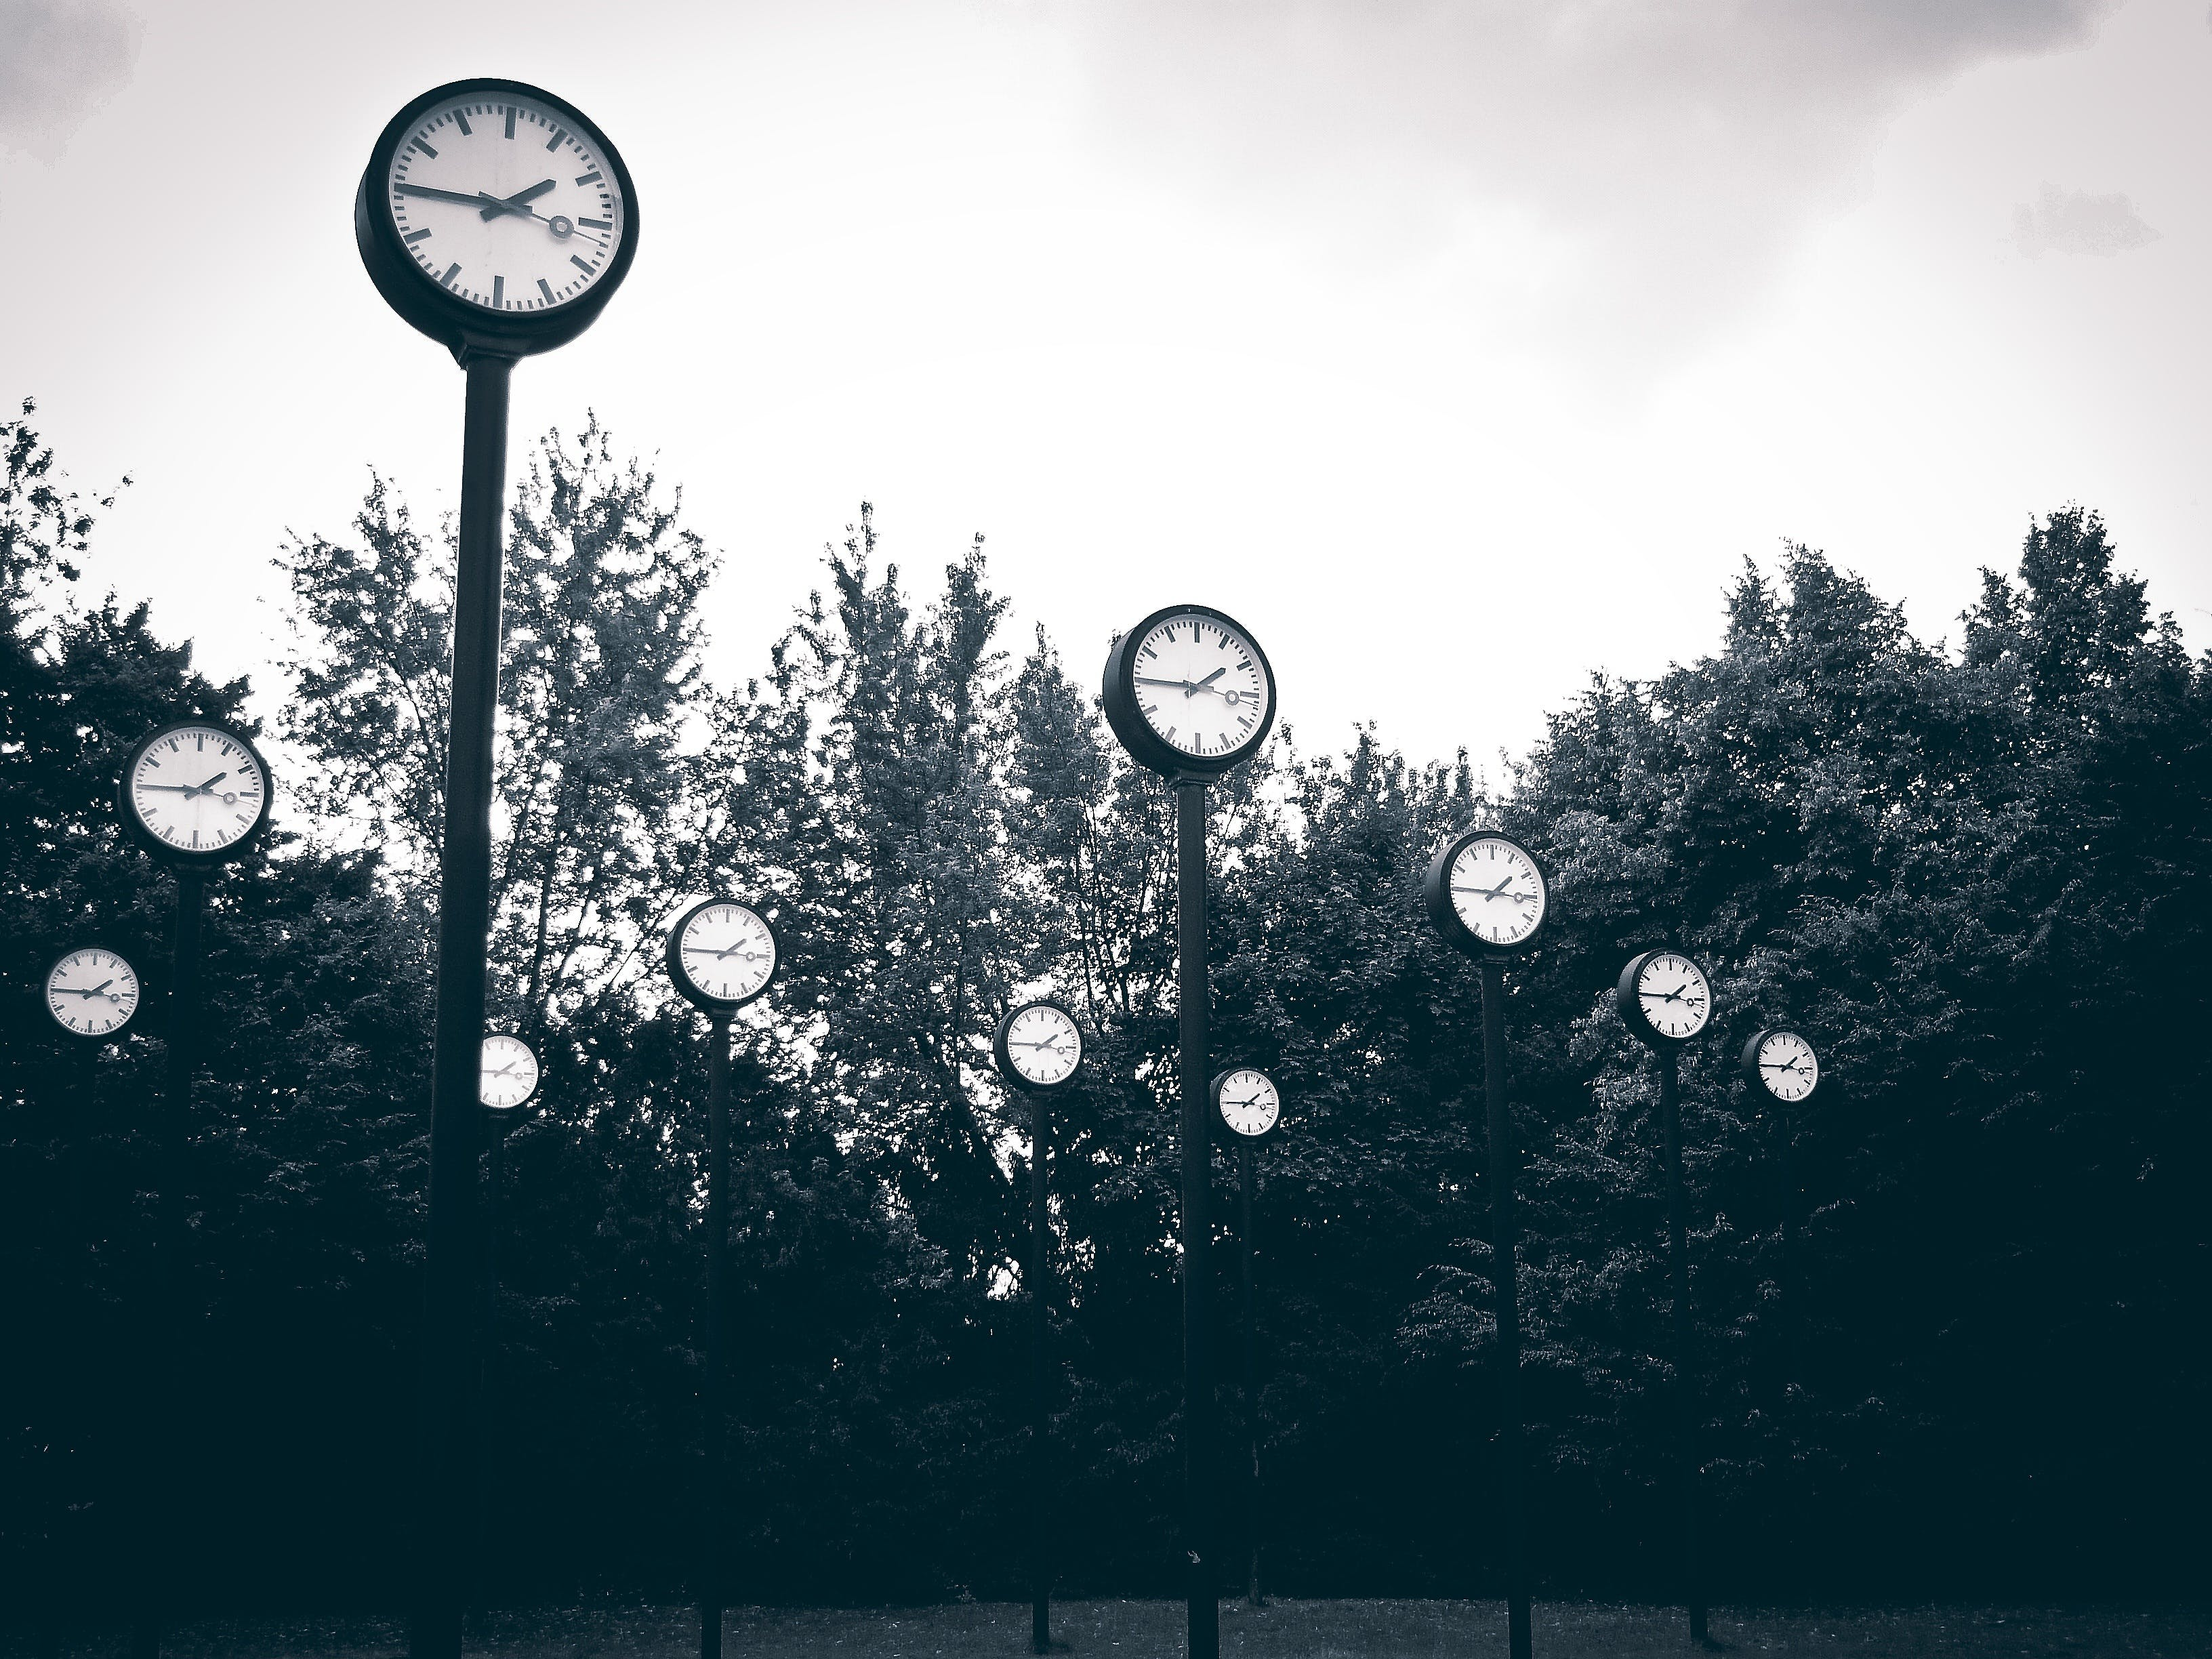 Gray Scale Photography of Clock Near Trees